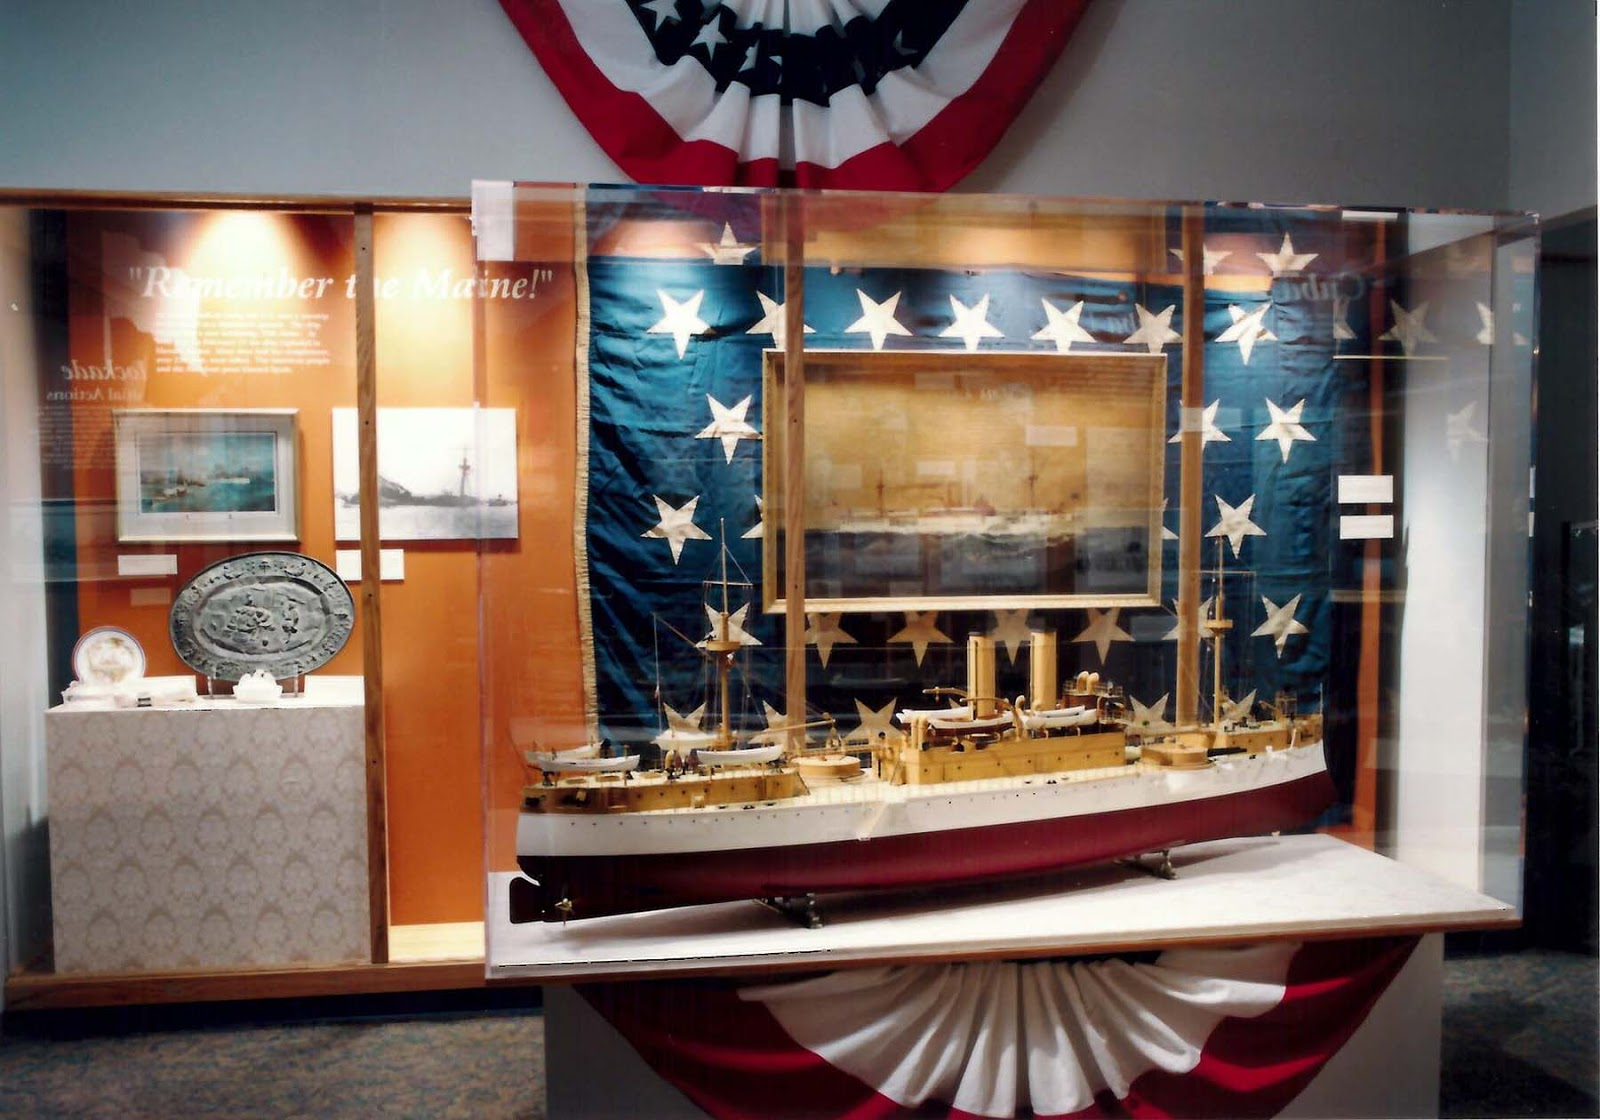 Exhibition Booth In Spanish : Hampton roads naval museum in praise of the divine miss m